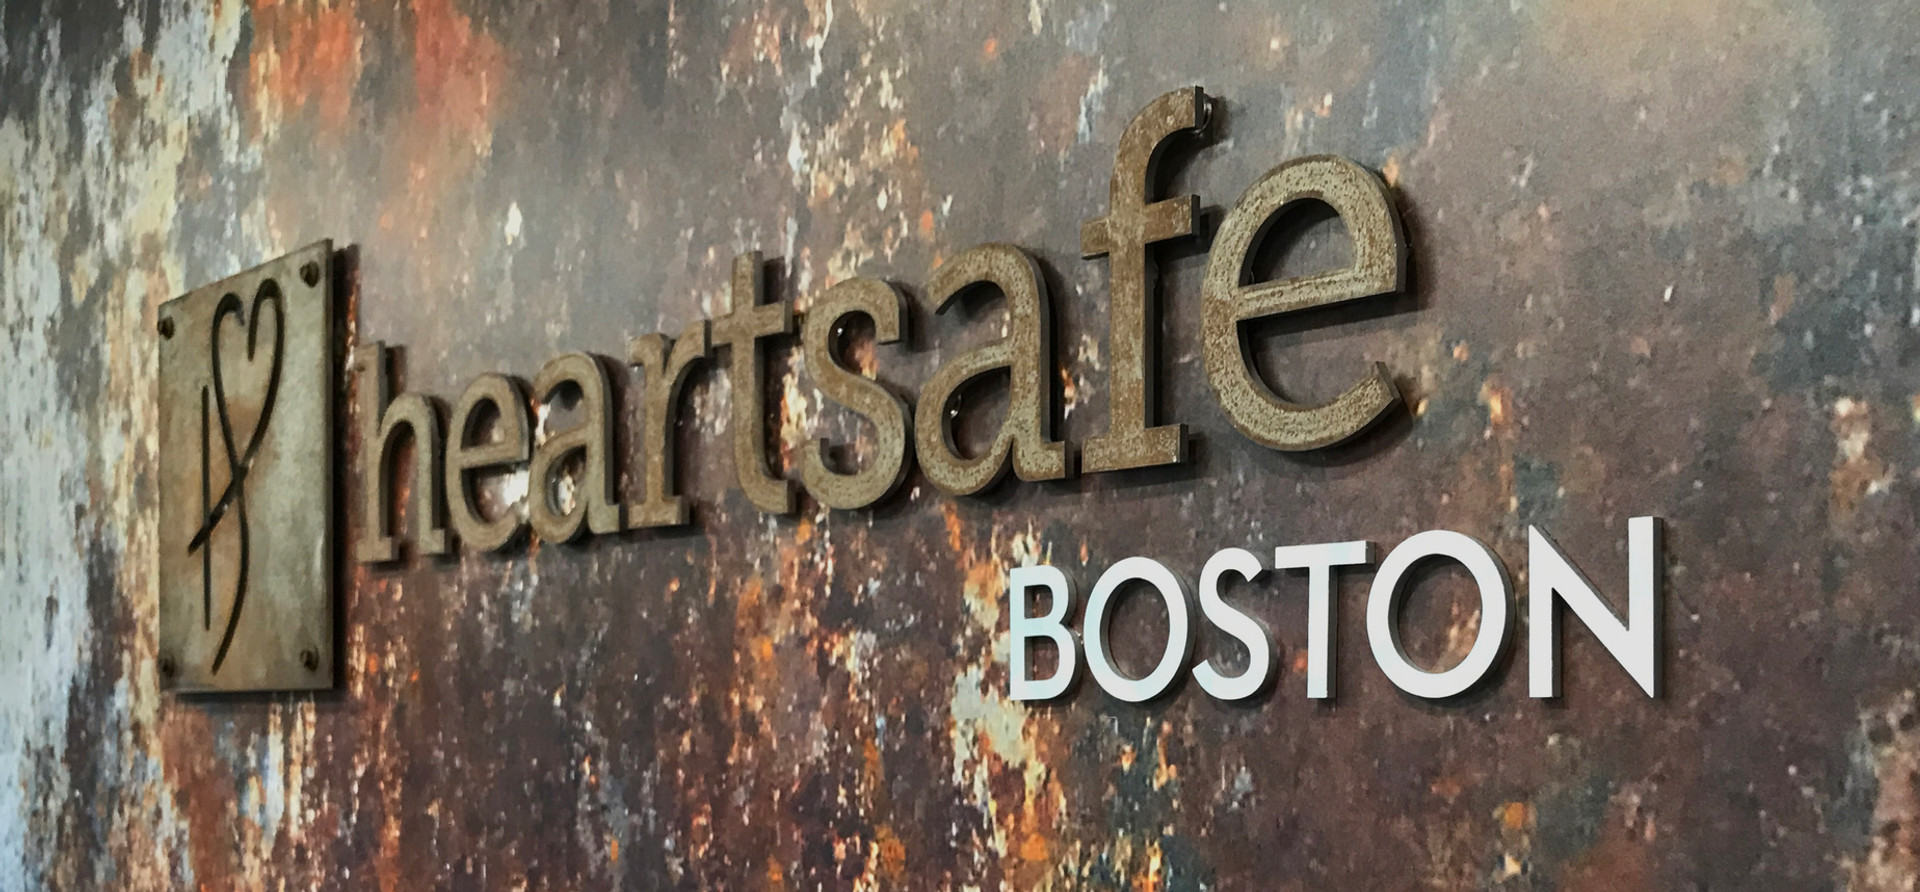 Heartsafe Lobby Wall